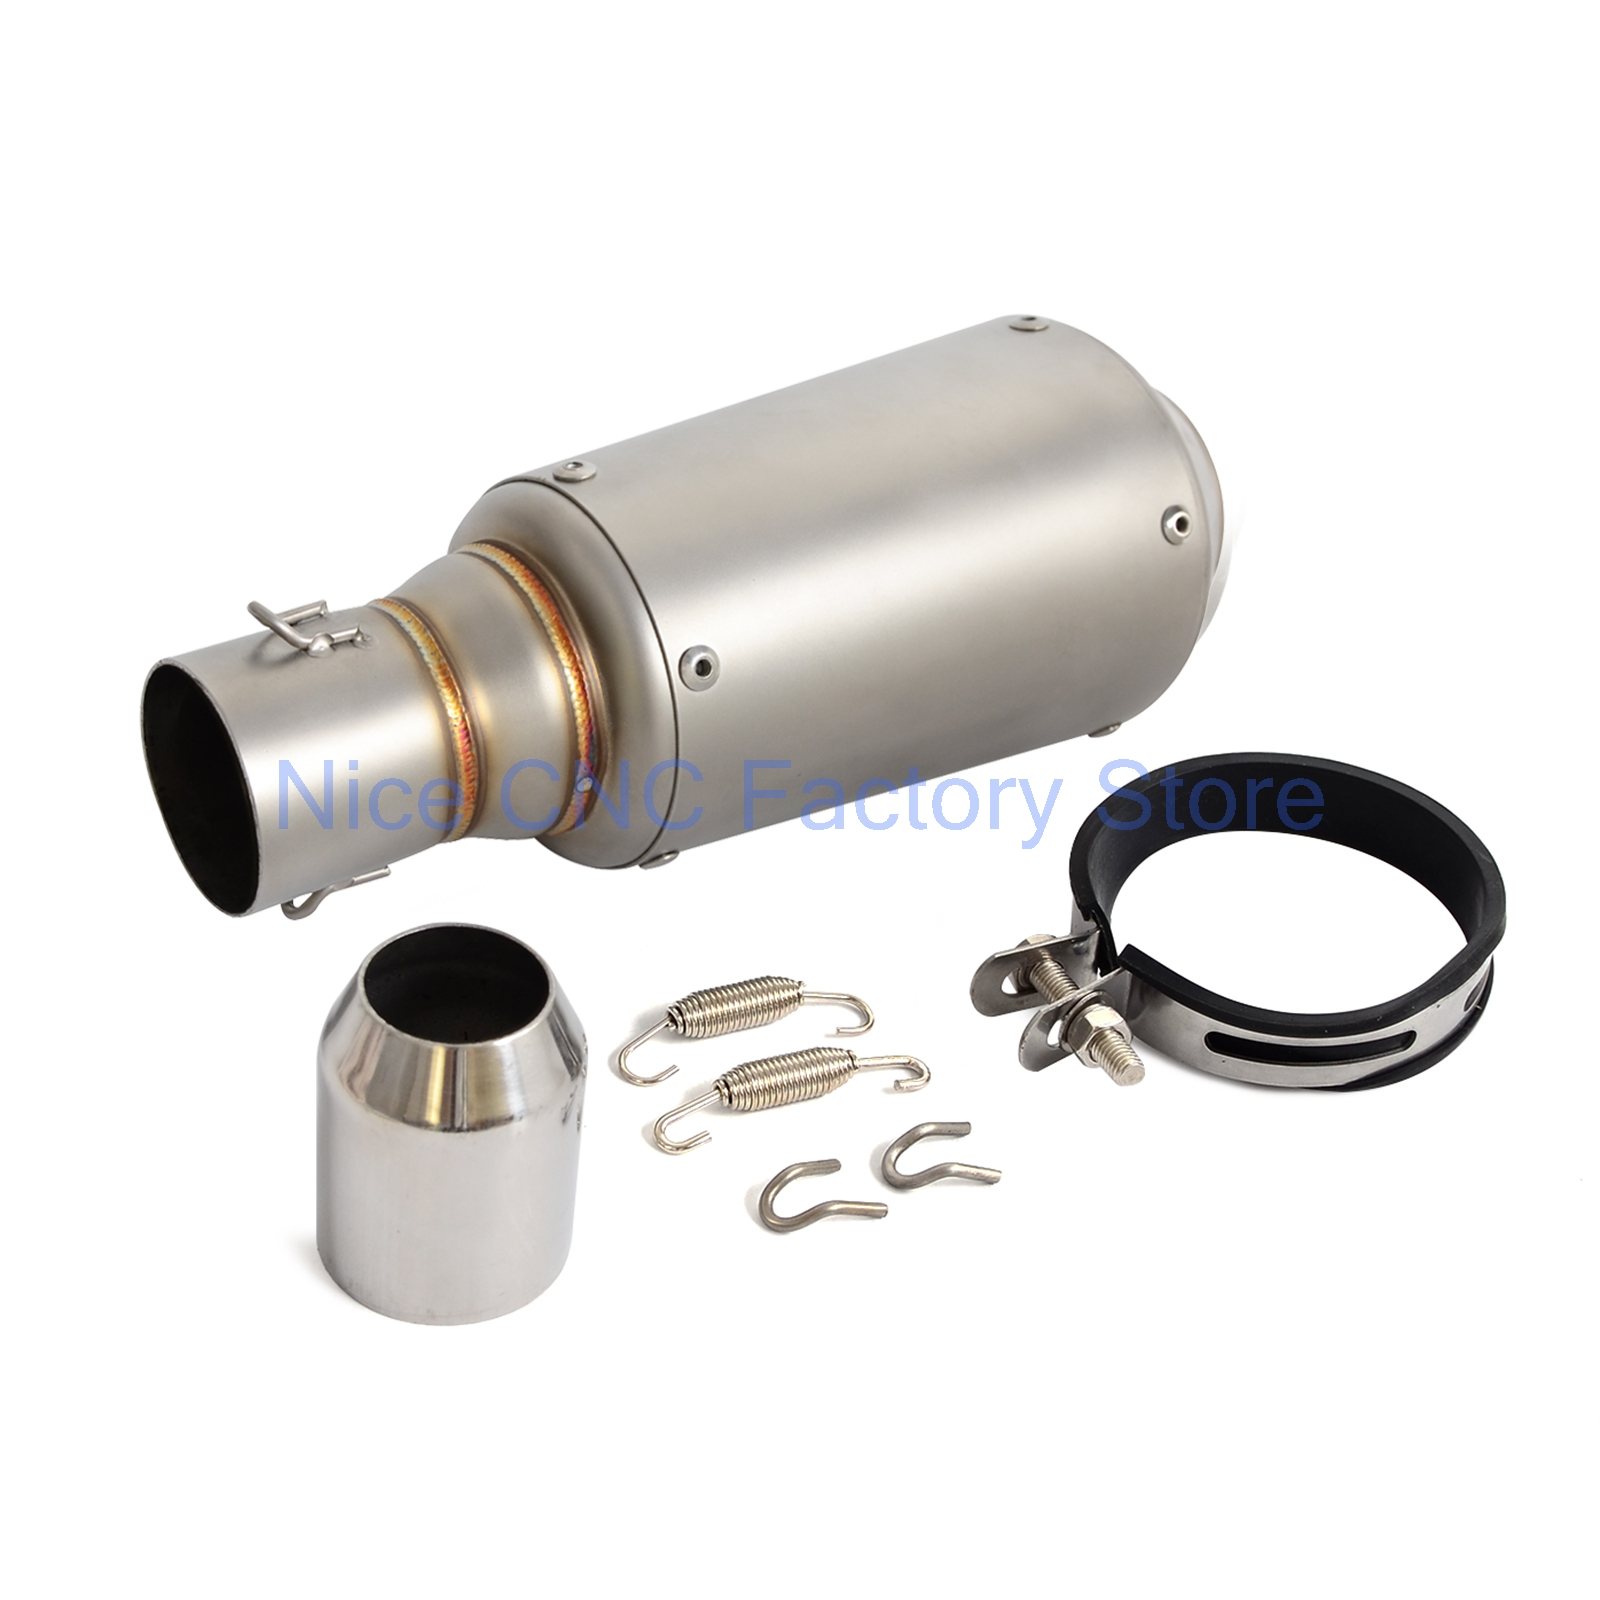 ФОТО Motorcycle GP Exhaust Muffler 38mm - 51mm Clip-on For Dirt Bike Street Bike Scooter ATV Quad